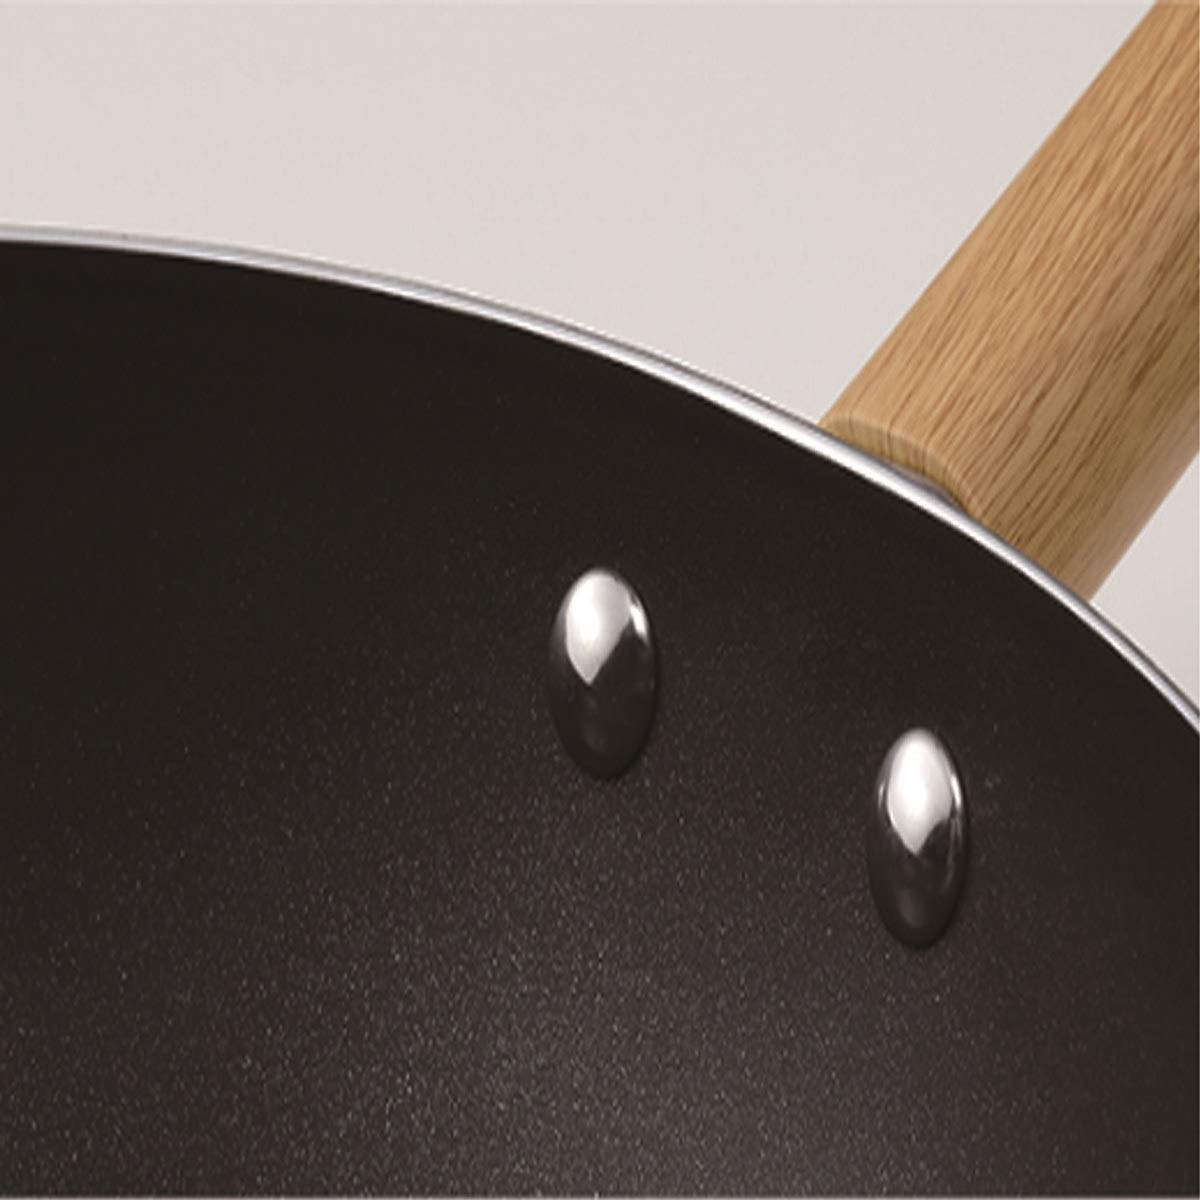 Hengtongtongxun Wok, Non-Stick Pan, Coal Gas Stove Induction Cooker Universal Wok, Light Luxury Wok, Strong and Sturdy (Size : 30cm)